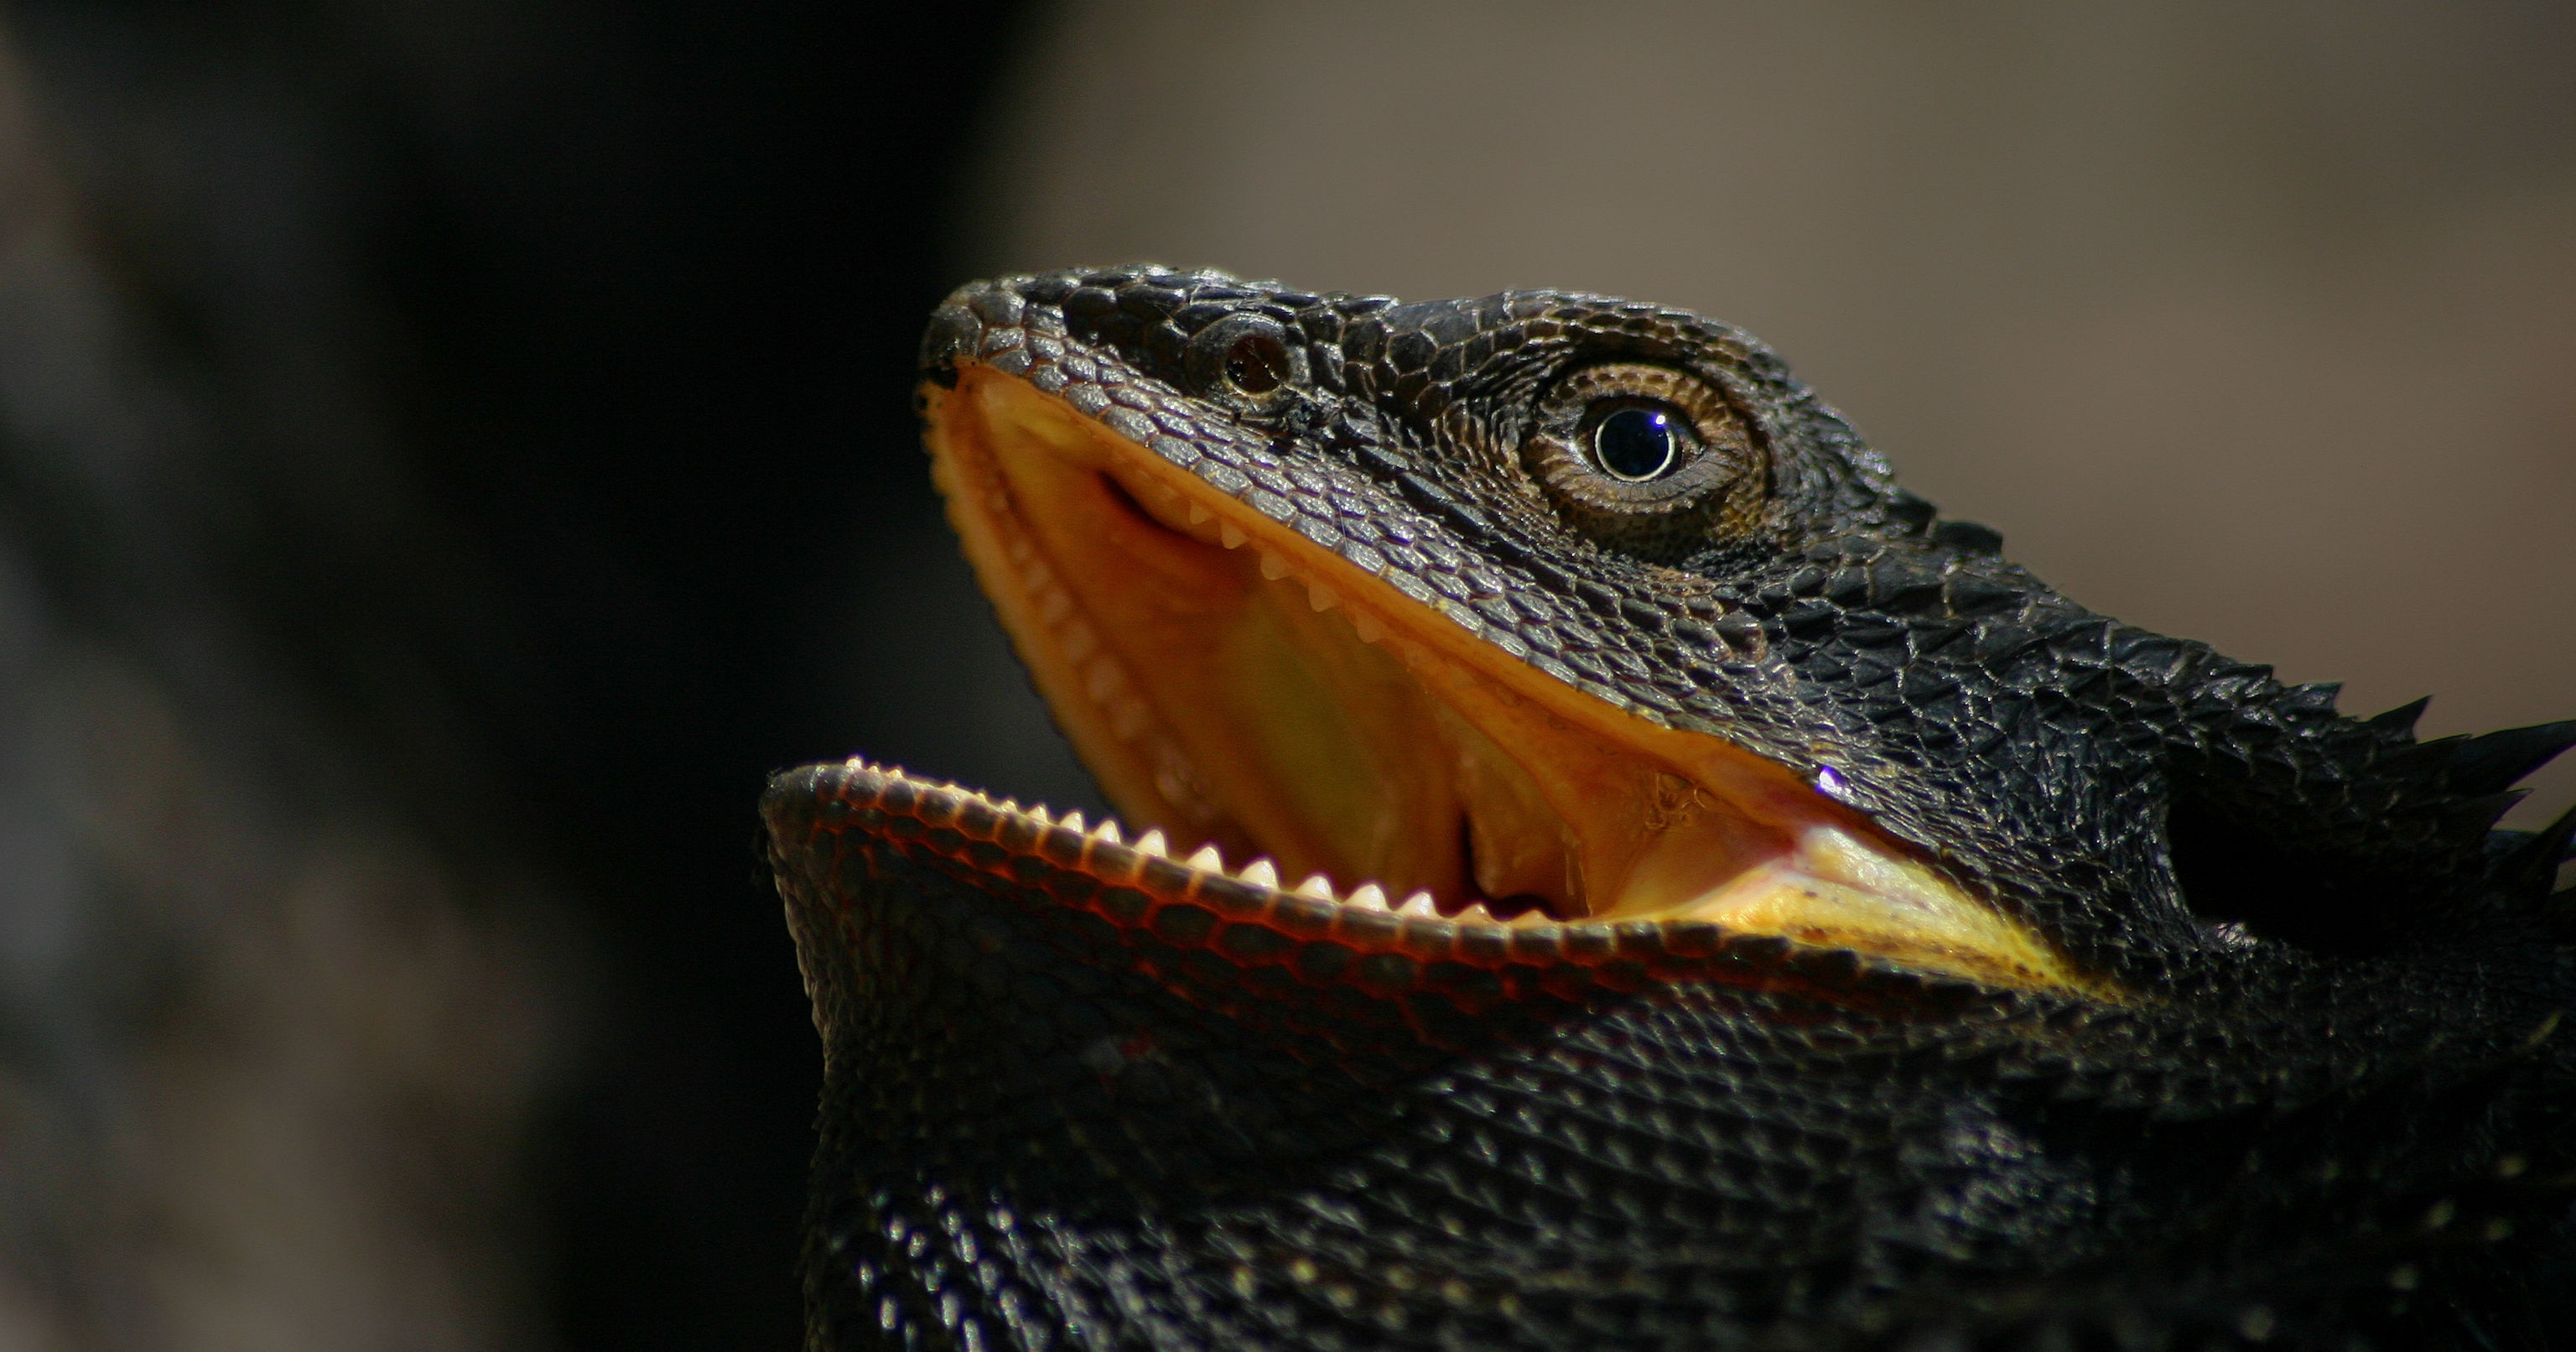 Eastern Bearded Dragon. © 2005 Erland Howden, all rights reserved.